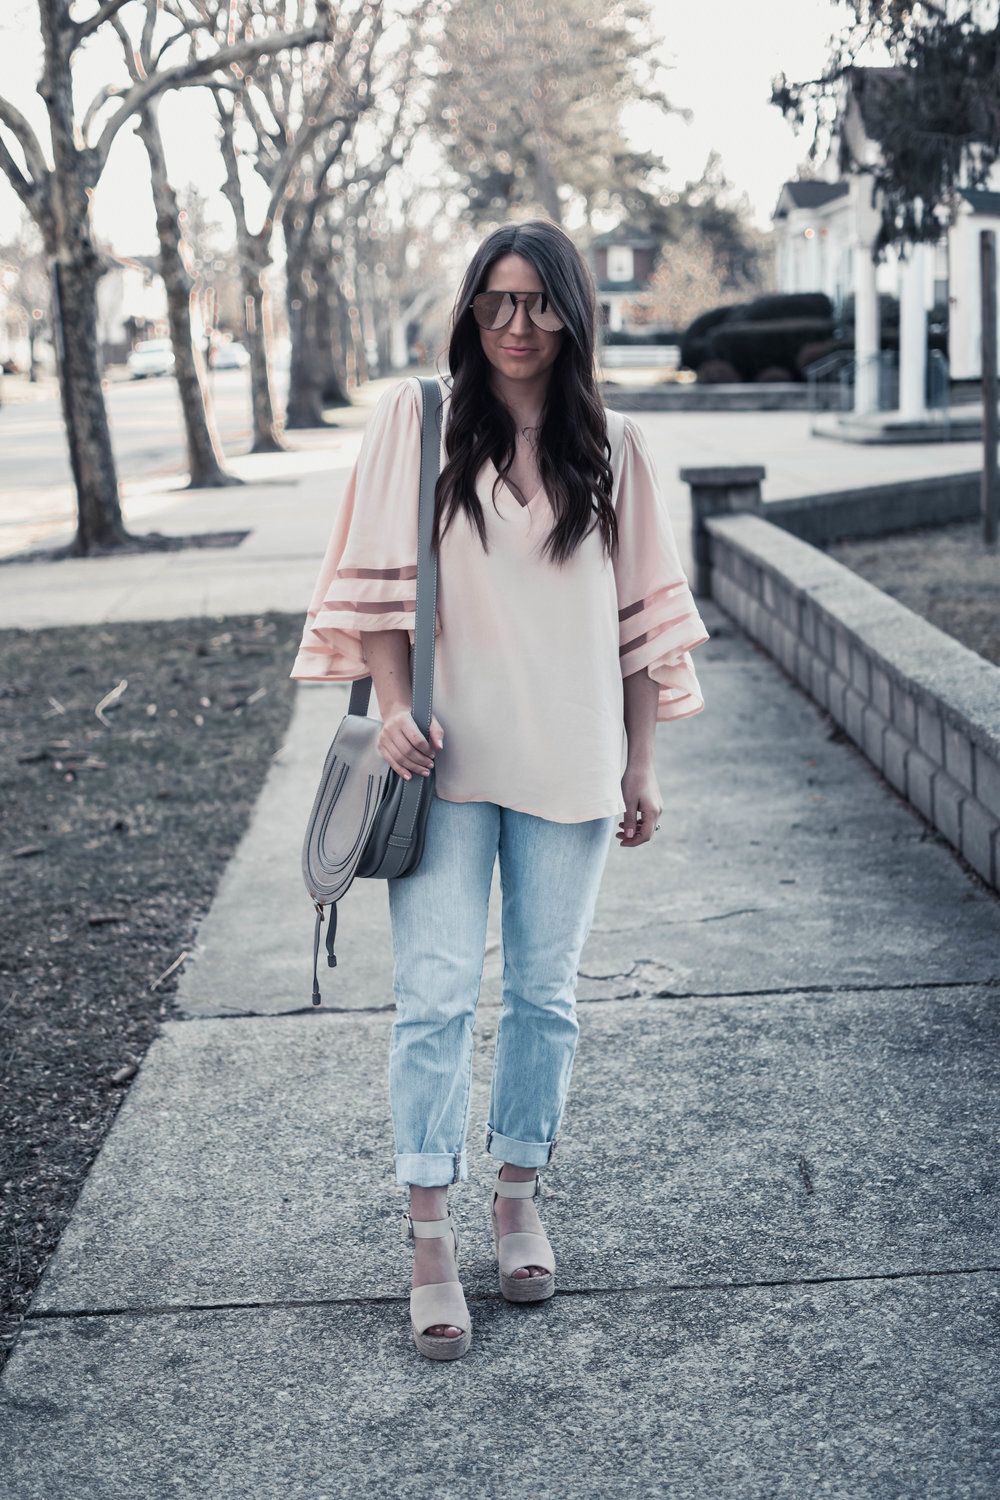 How to Wear the Sheer Trend this Spring | Pine Barren Beauty | blush top with sheer inserts, madewell denim, spring outfit idea, spring outfit inspiration, spring fashion, quay sunnies